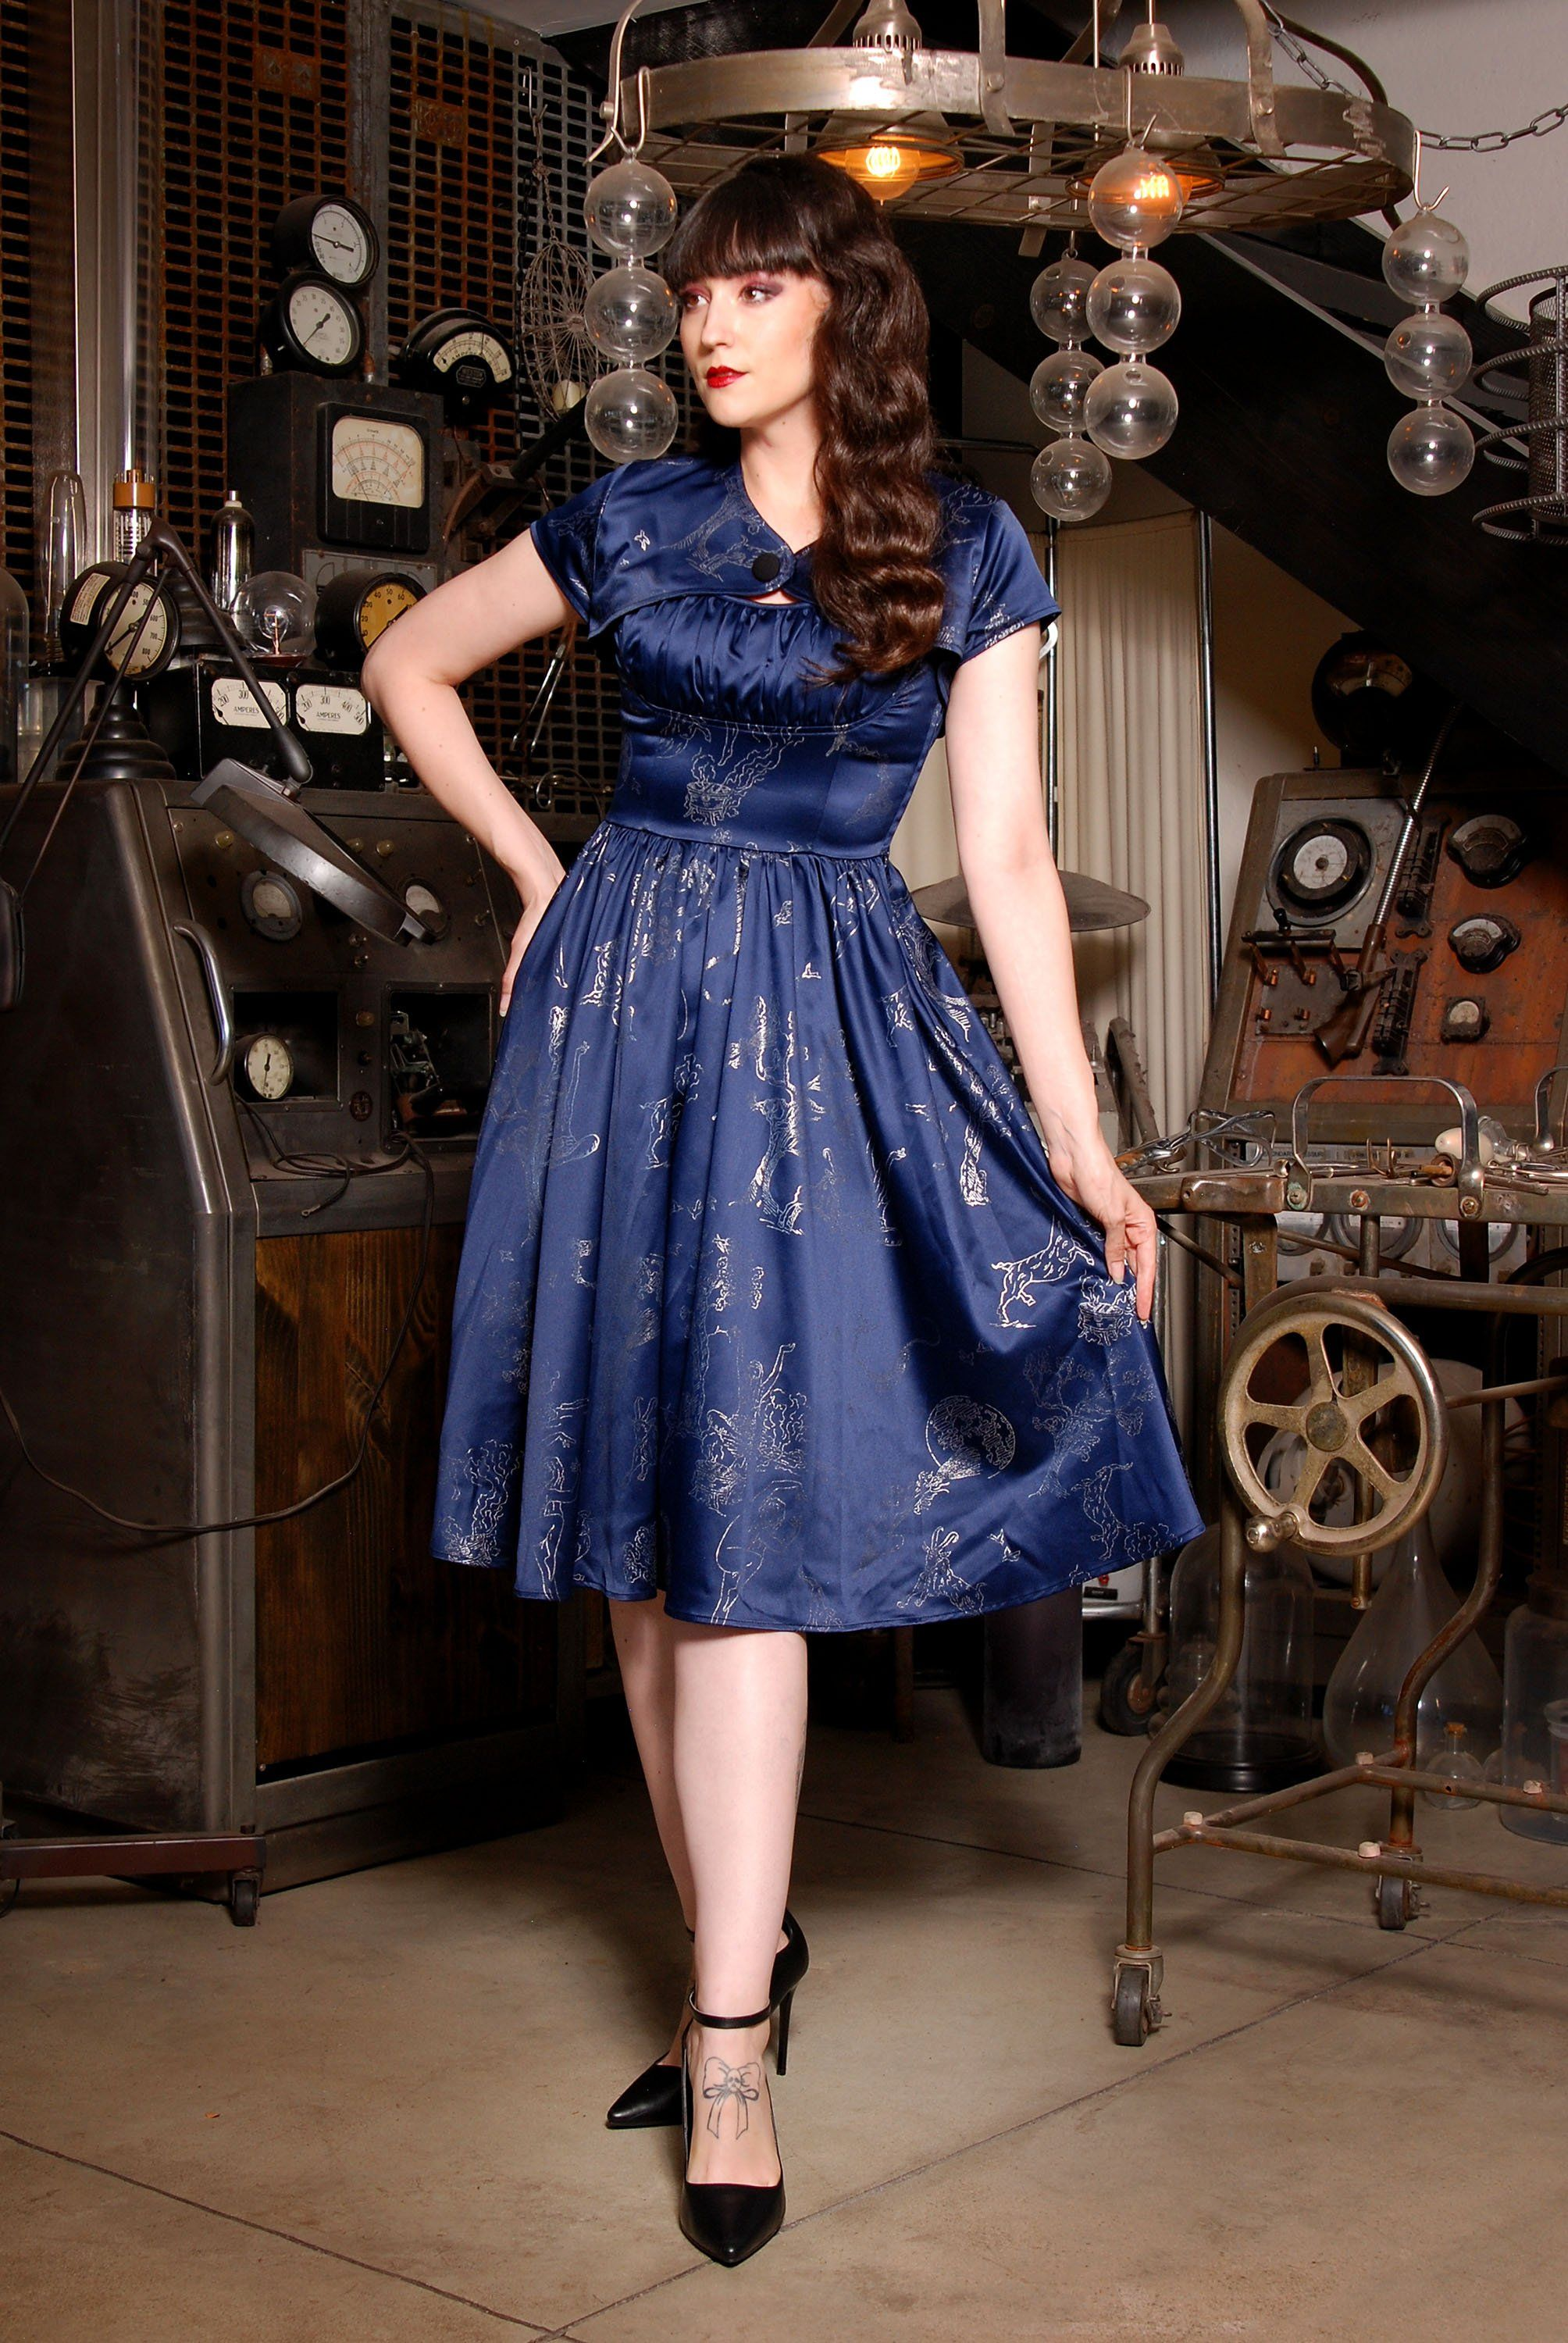 Evelyn Vintage Cocktail Dress In Blue Silver Witchy Toile Satin Pinup Couture In 2021 Cocktail Dress Vintage Vintage Inspired Dresses Vintage Inspired Cocktail Dress [ 3000 x 2008 Pixel ]